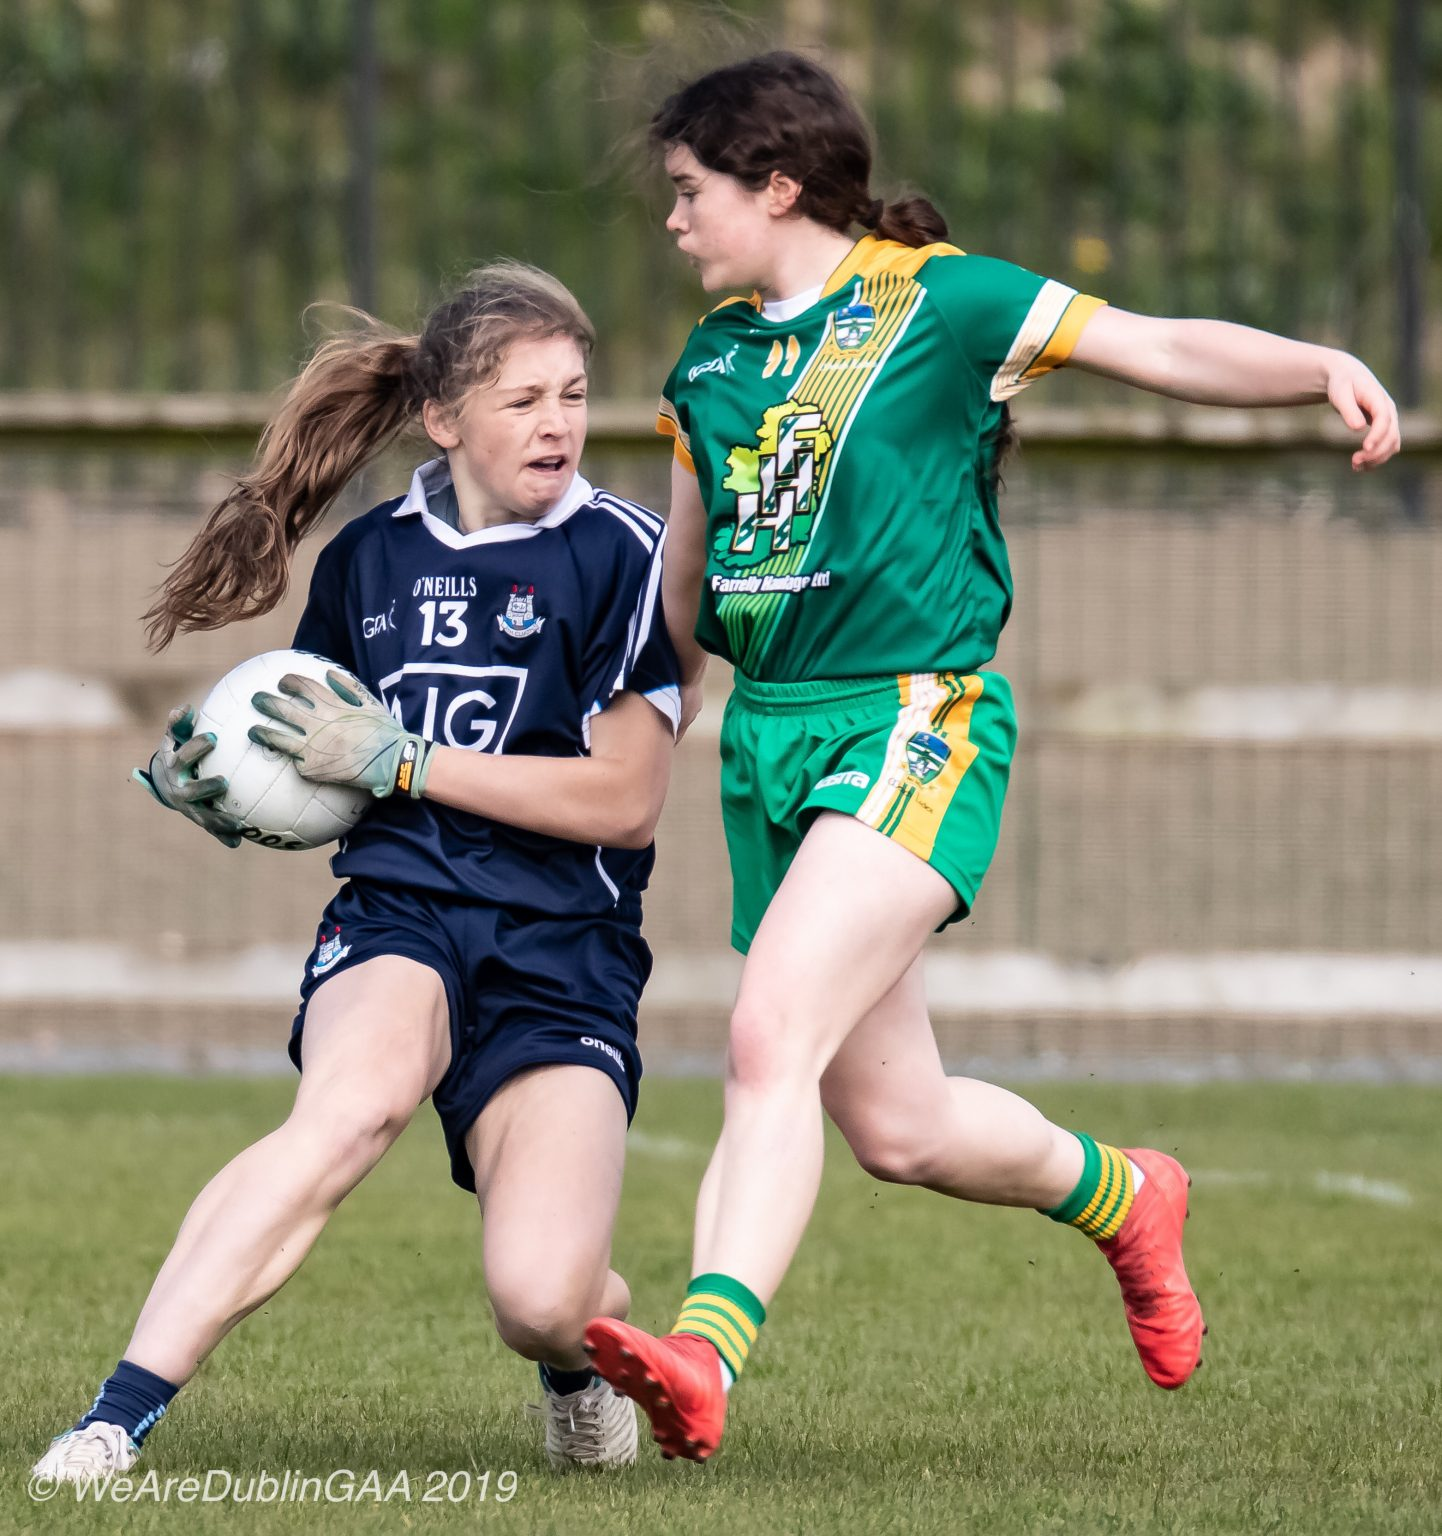 Dublin Ladies footballer in a navy jersey and navy shorts is tackled by a Meath player in a green jersey with yellow stripes across the front and green shorts both sides meet in the Leinster U16 Championship Final.